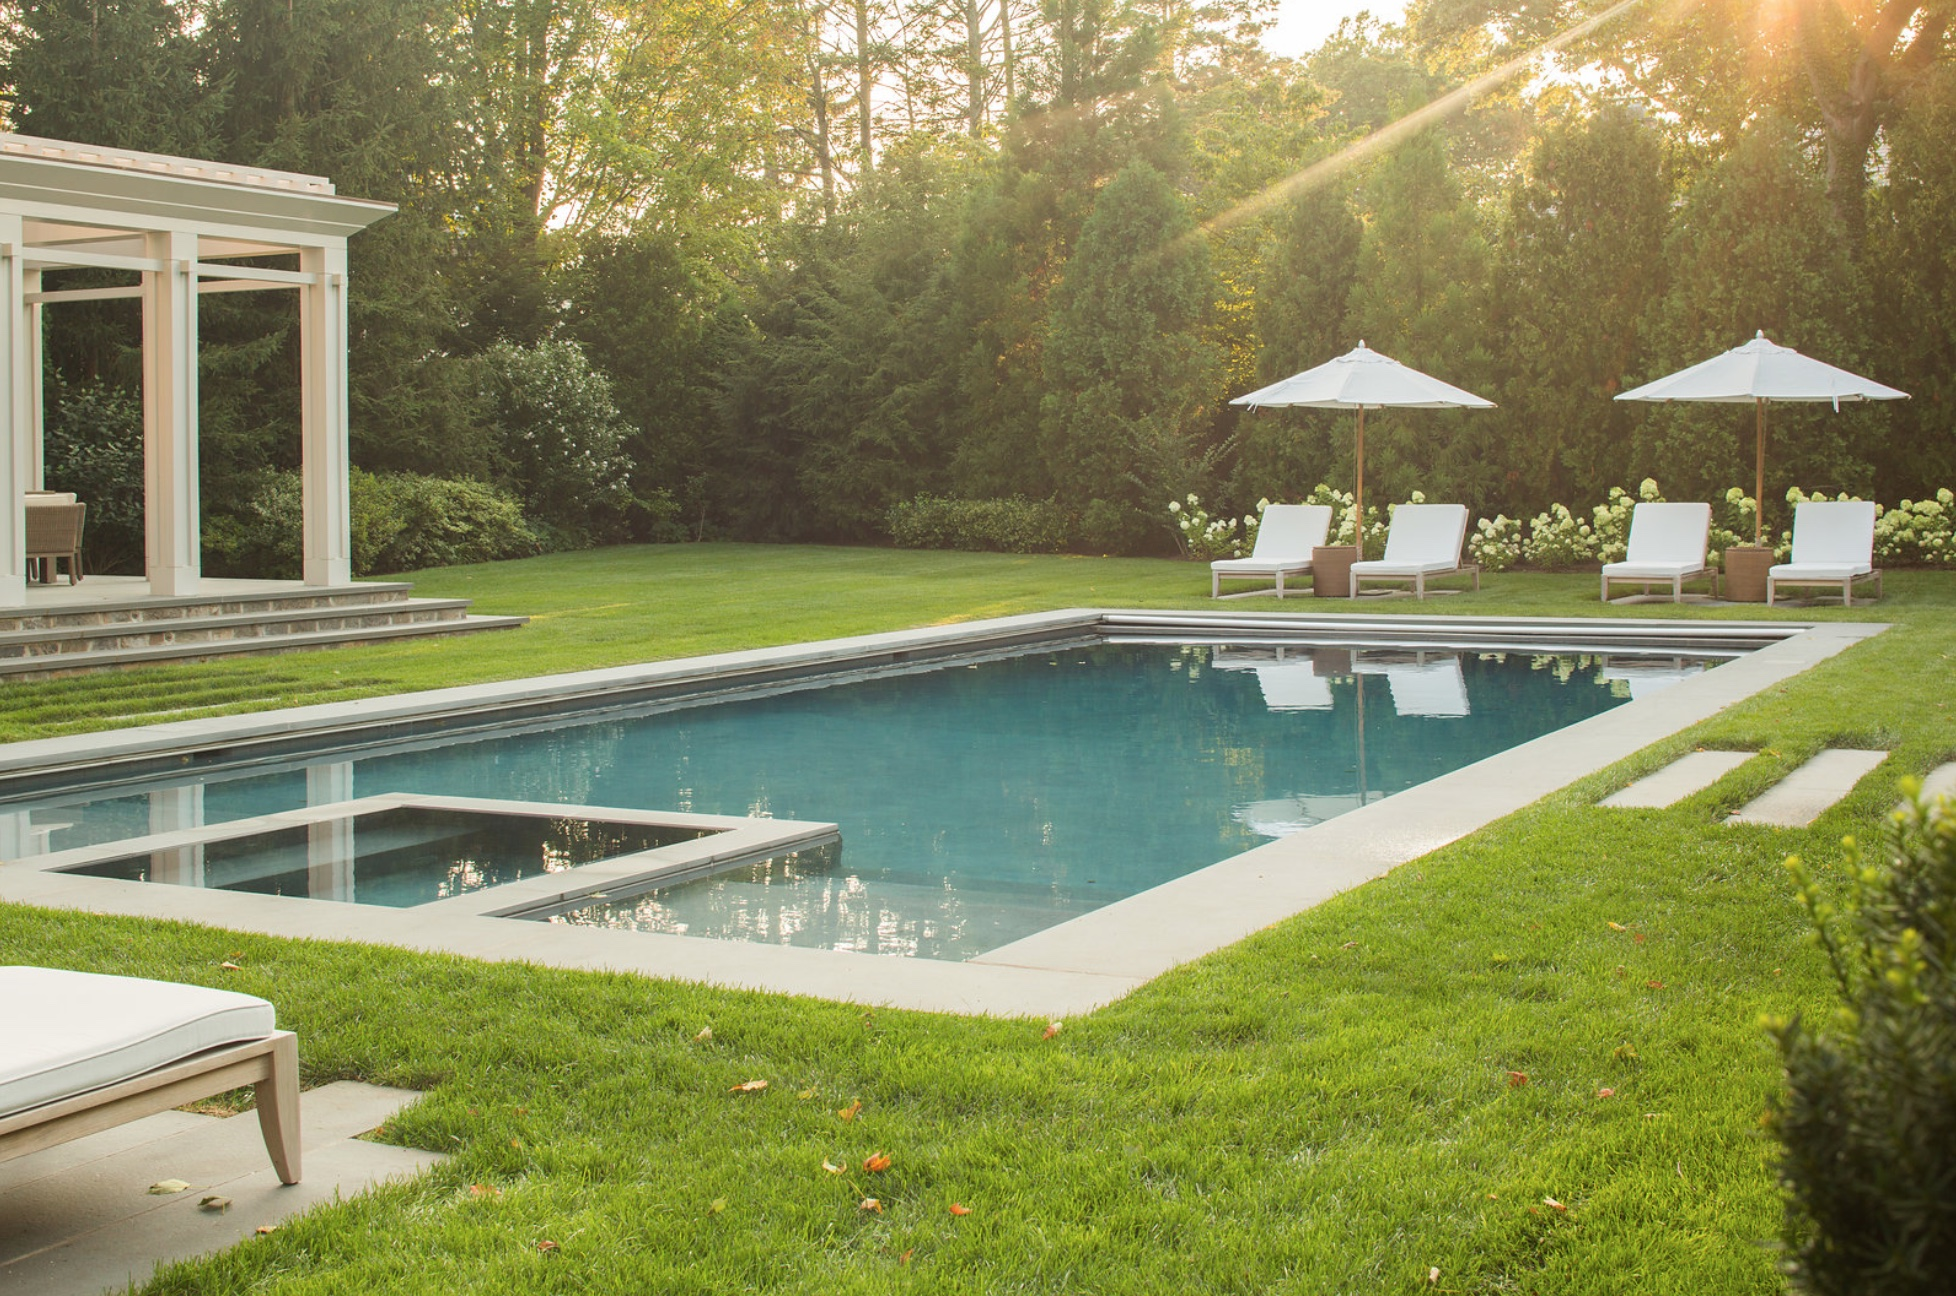 Swimming pool set in lawn with paving islands for easy lounging.  Tall evergreen screening trees.